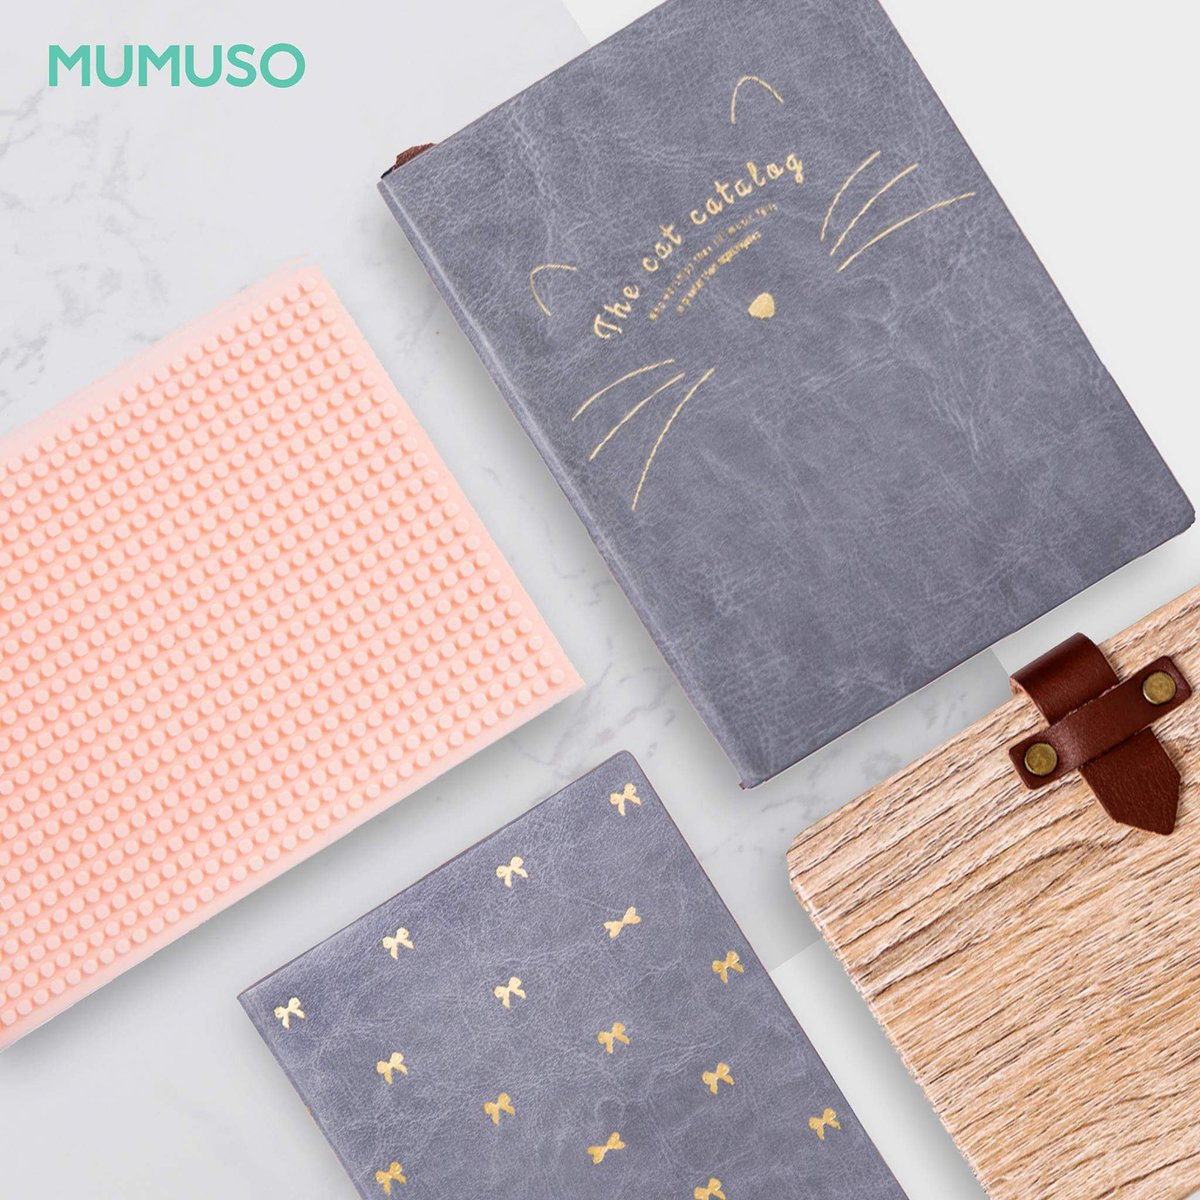 How old were you when you had your first diary? 🤔  #Mumuso